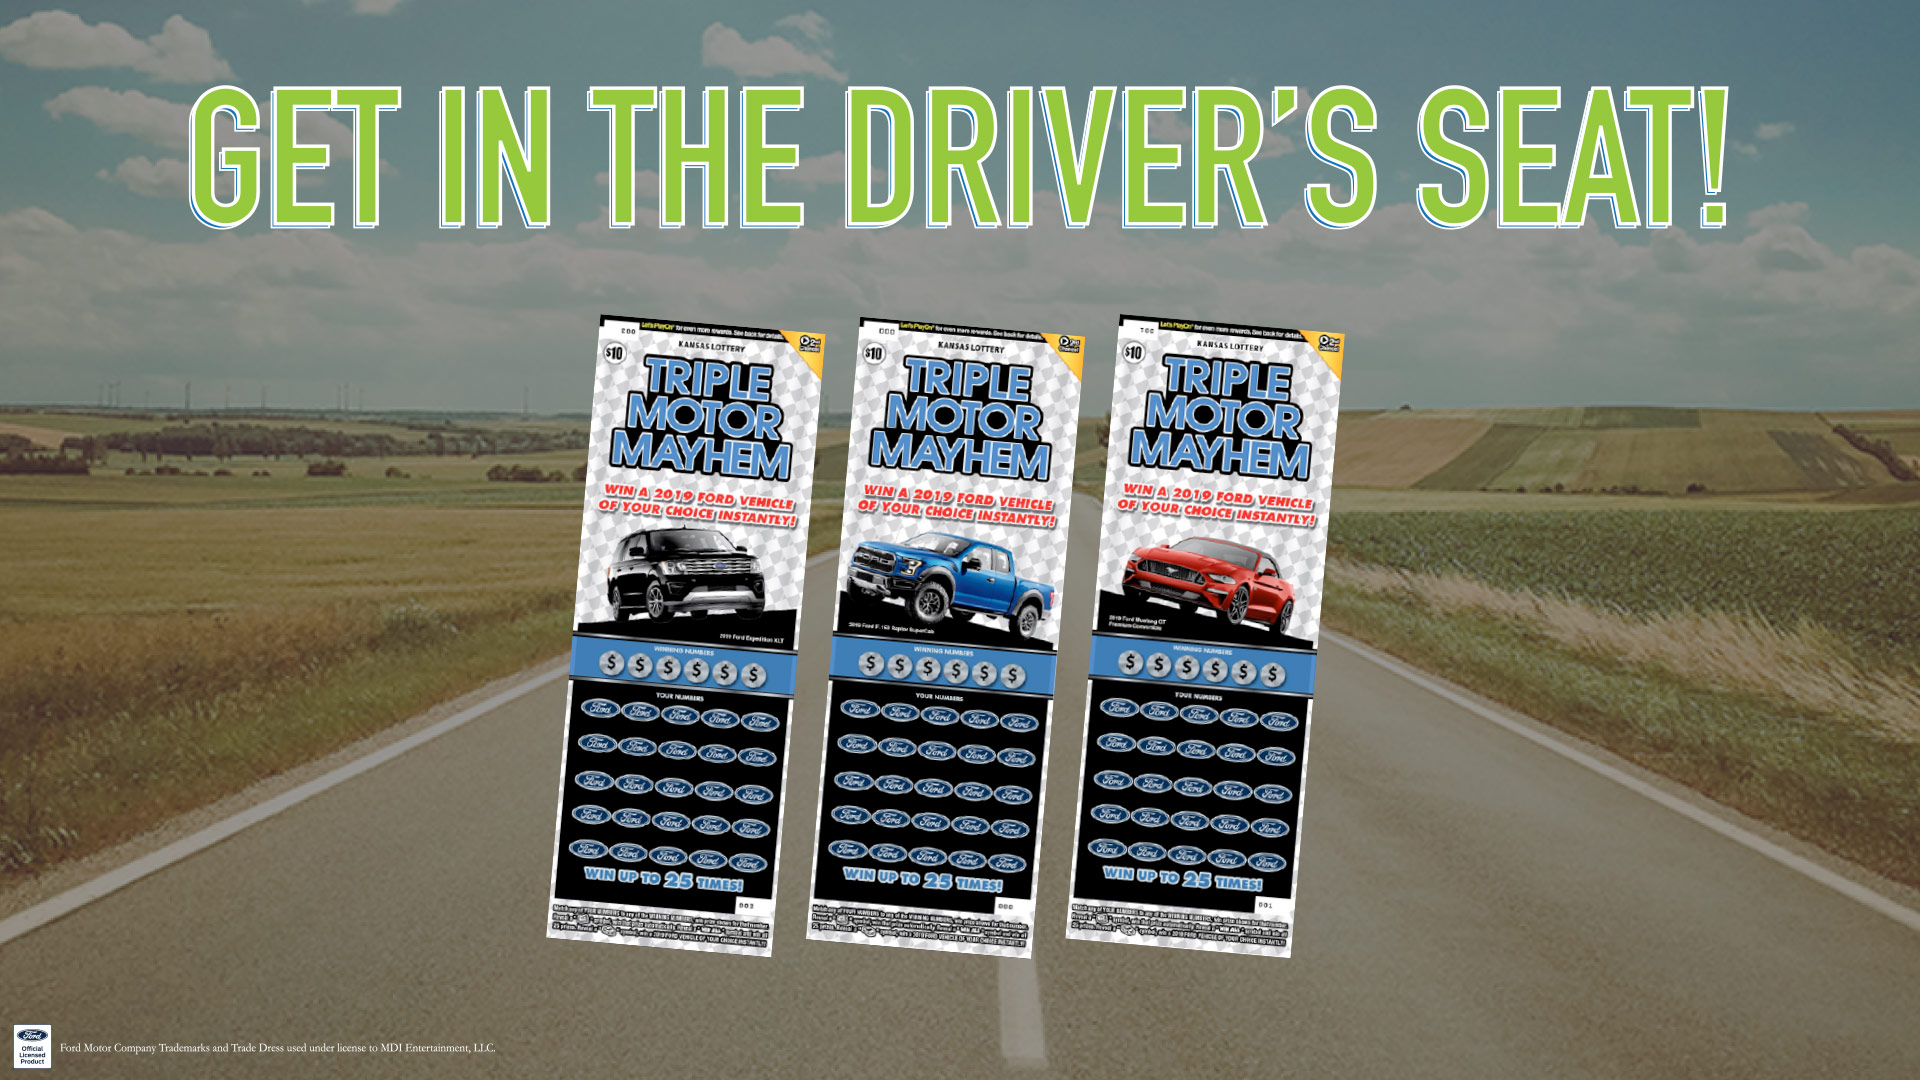 Win a Ford vehicle of your choice with Triple Motor Mayhem